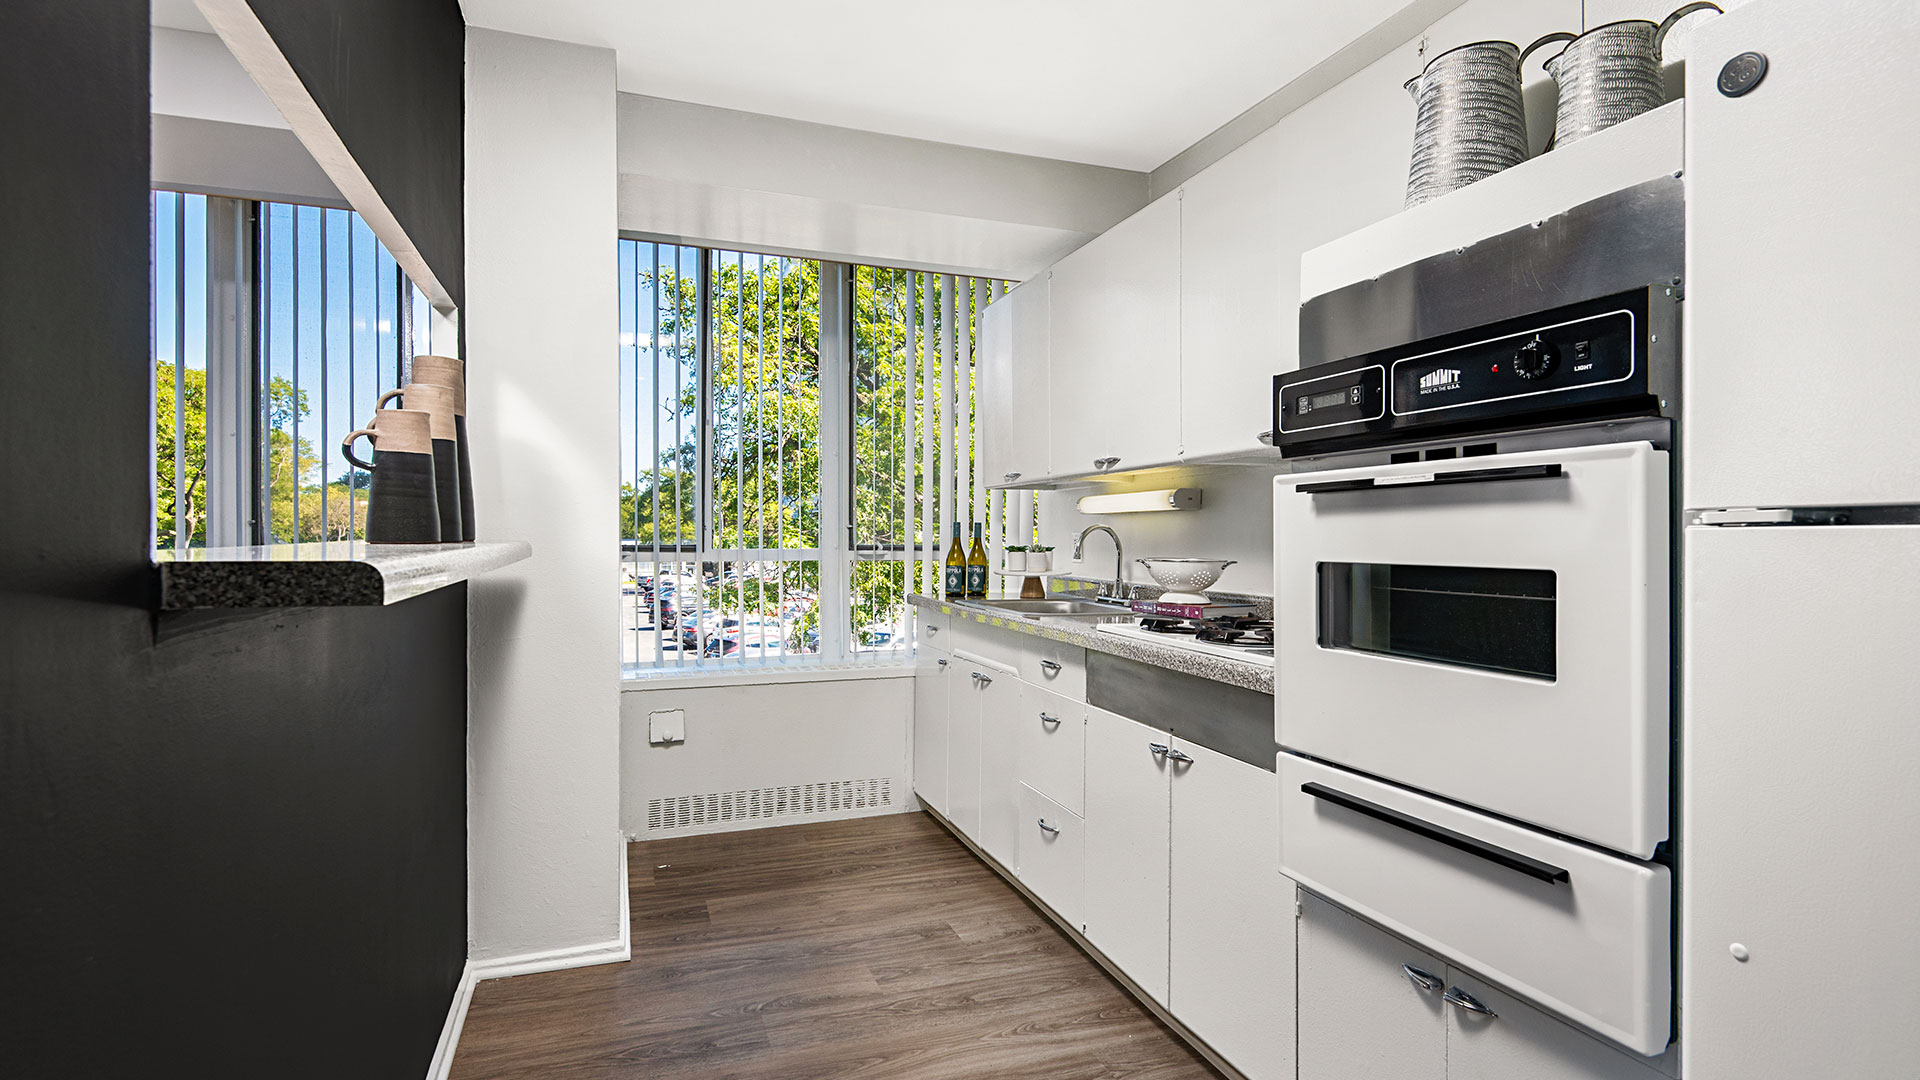 A look through the kitchen of a 3-bedroom, high-rise residence at Lake Meadows. White cabinets and appliances line the right wall, with a serving window on the left. Trees and blue skies are seen out the window.